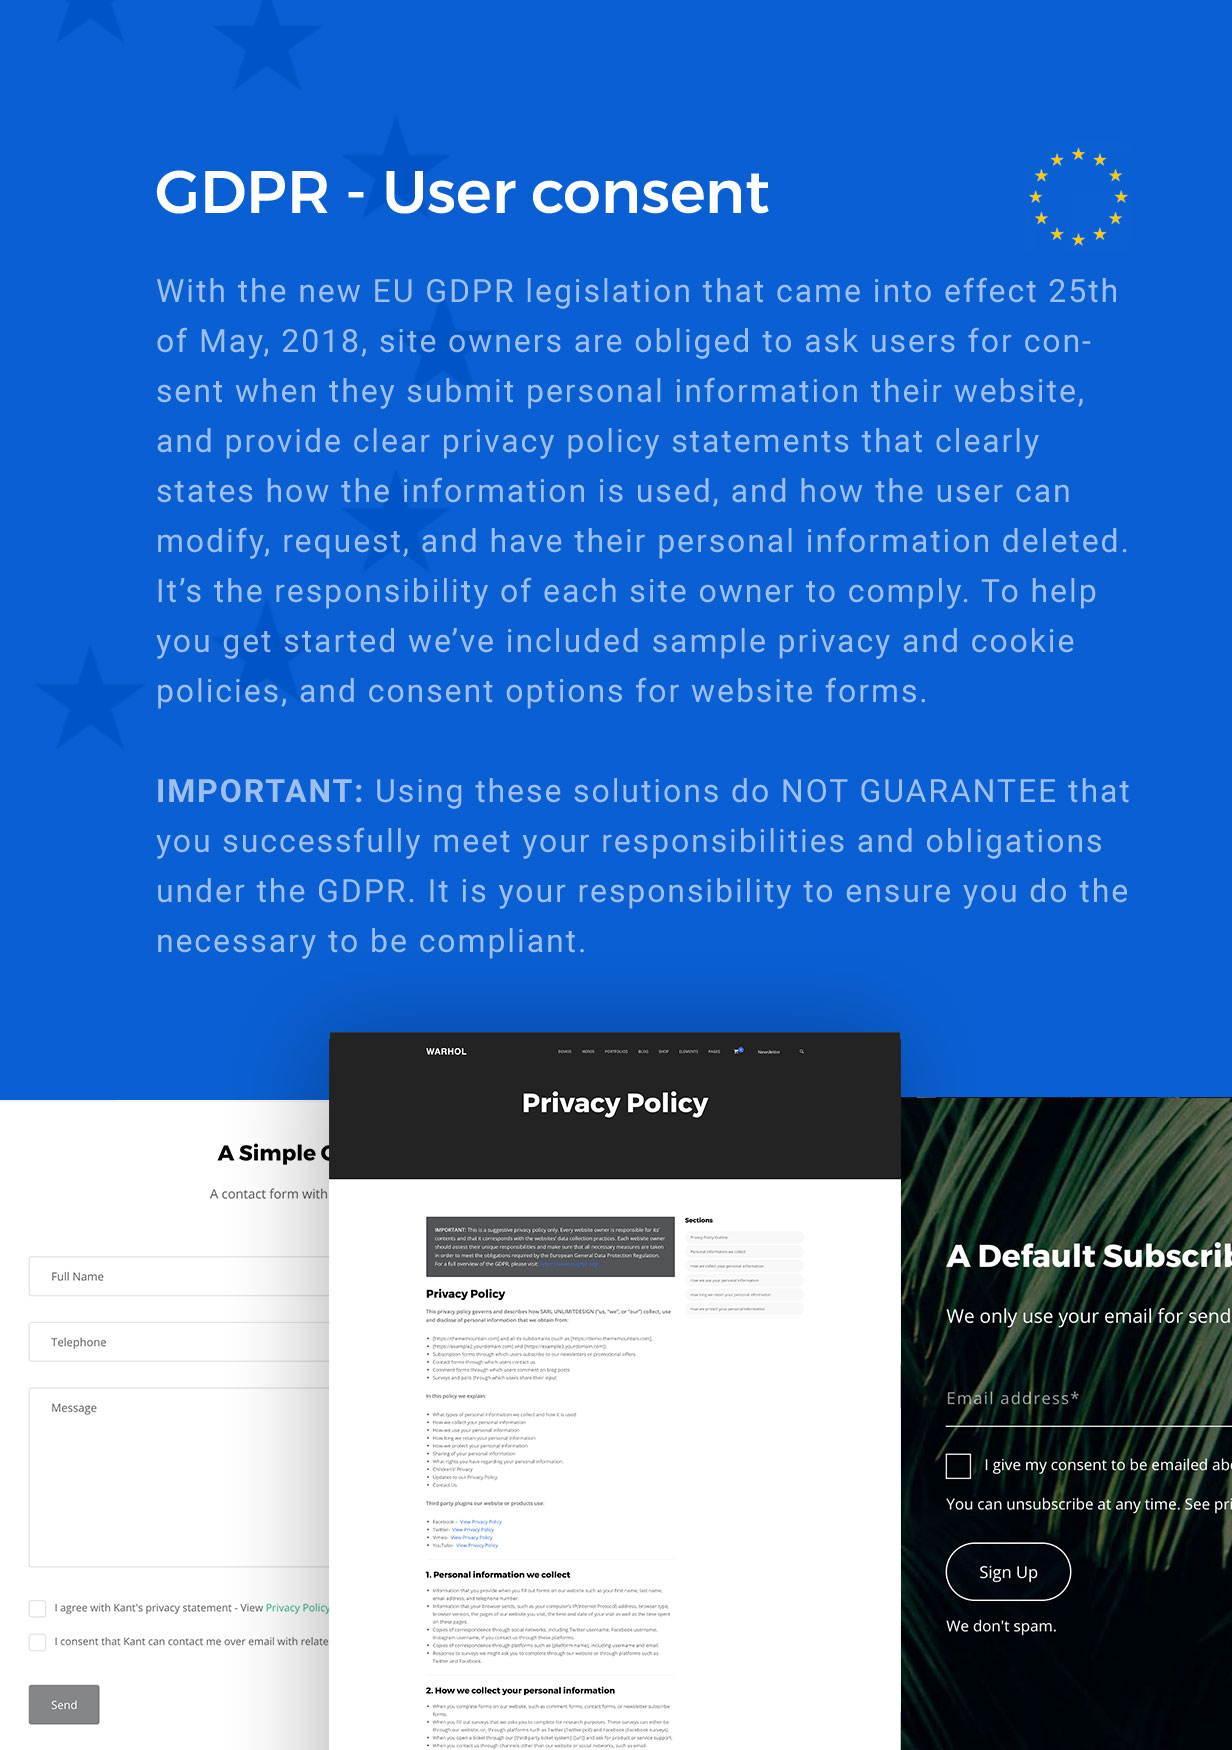 tf-profile-gdpr.jpg?version=1.0 Warhol - Responsive Multipurpose WordPress Theme for Creatives theme WordPress